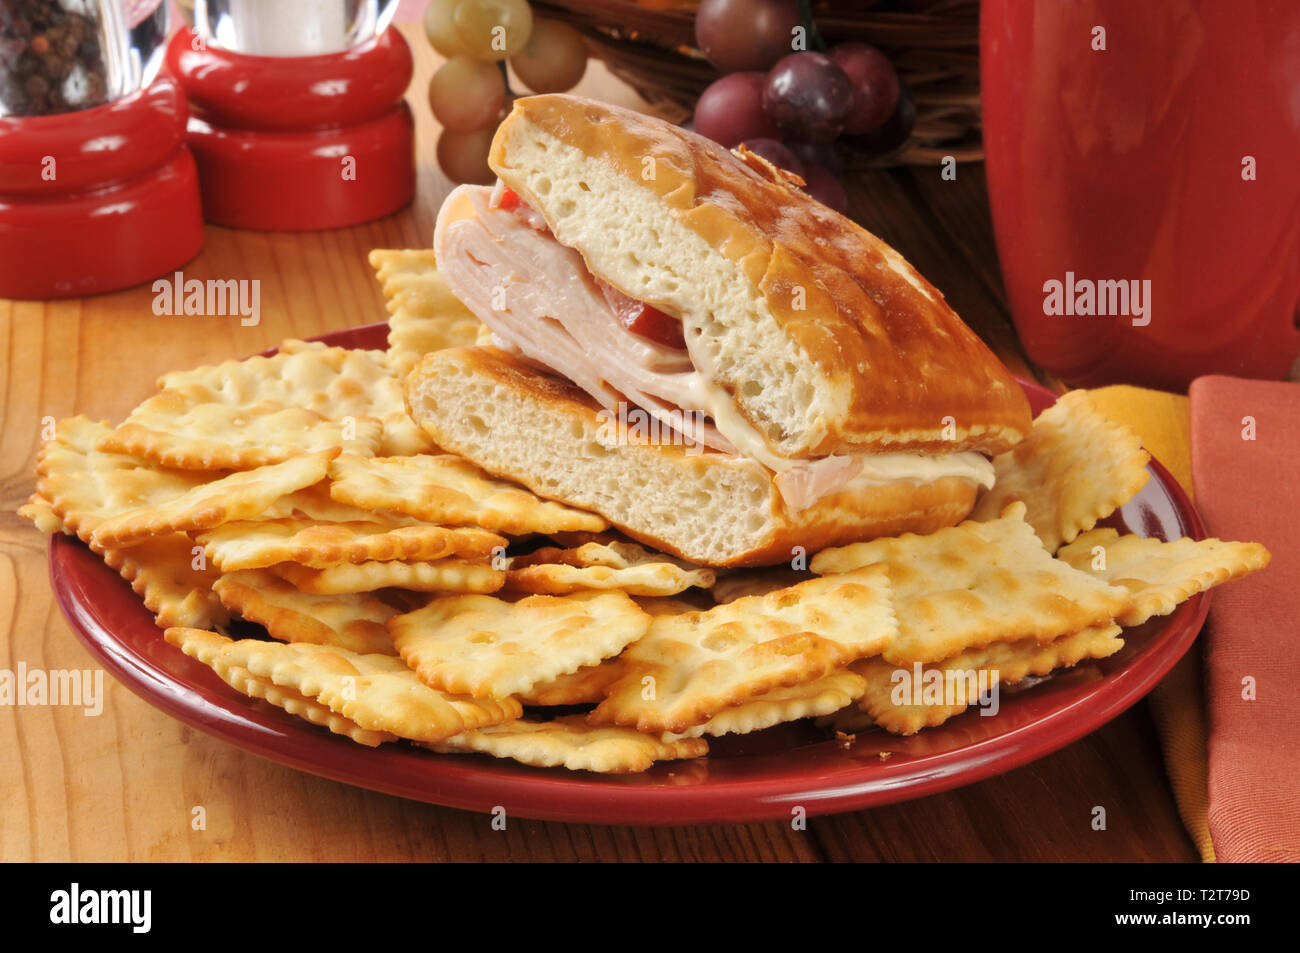 A turkey and cheese sandwich with crackers - Stock Image